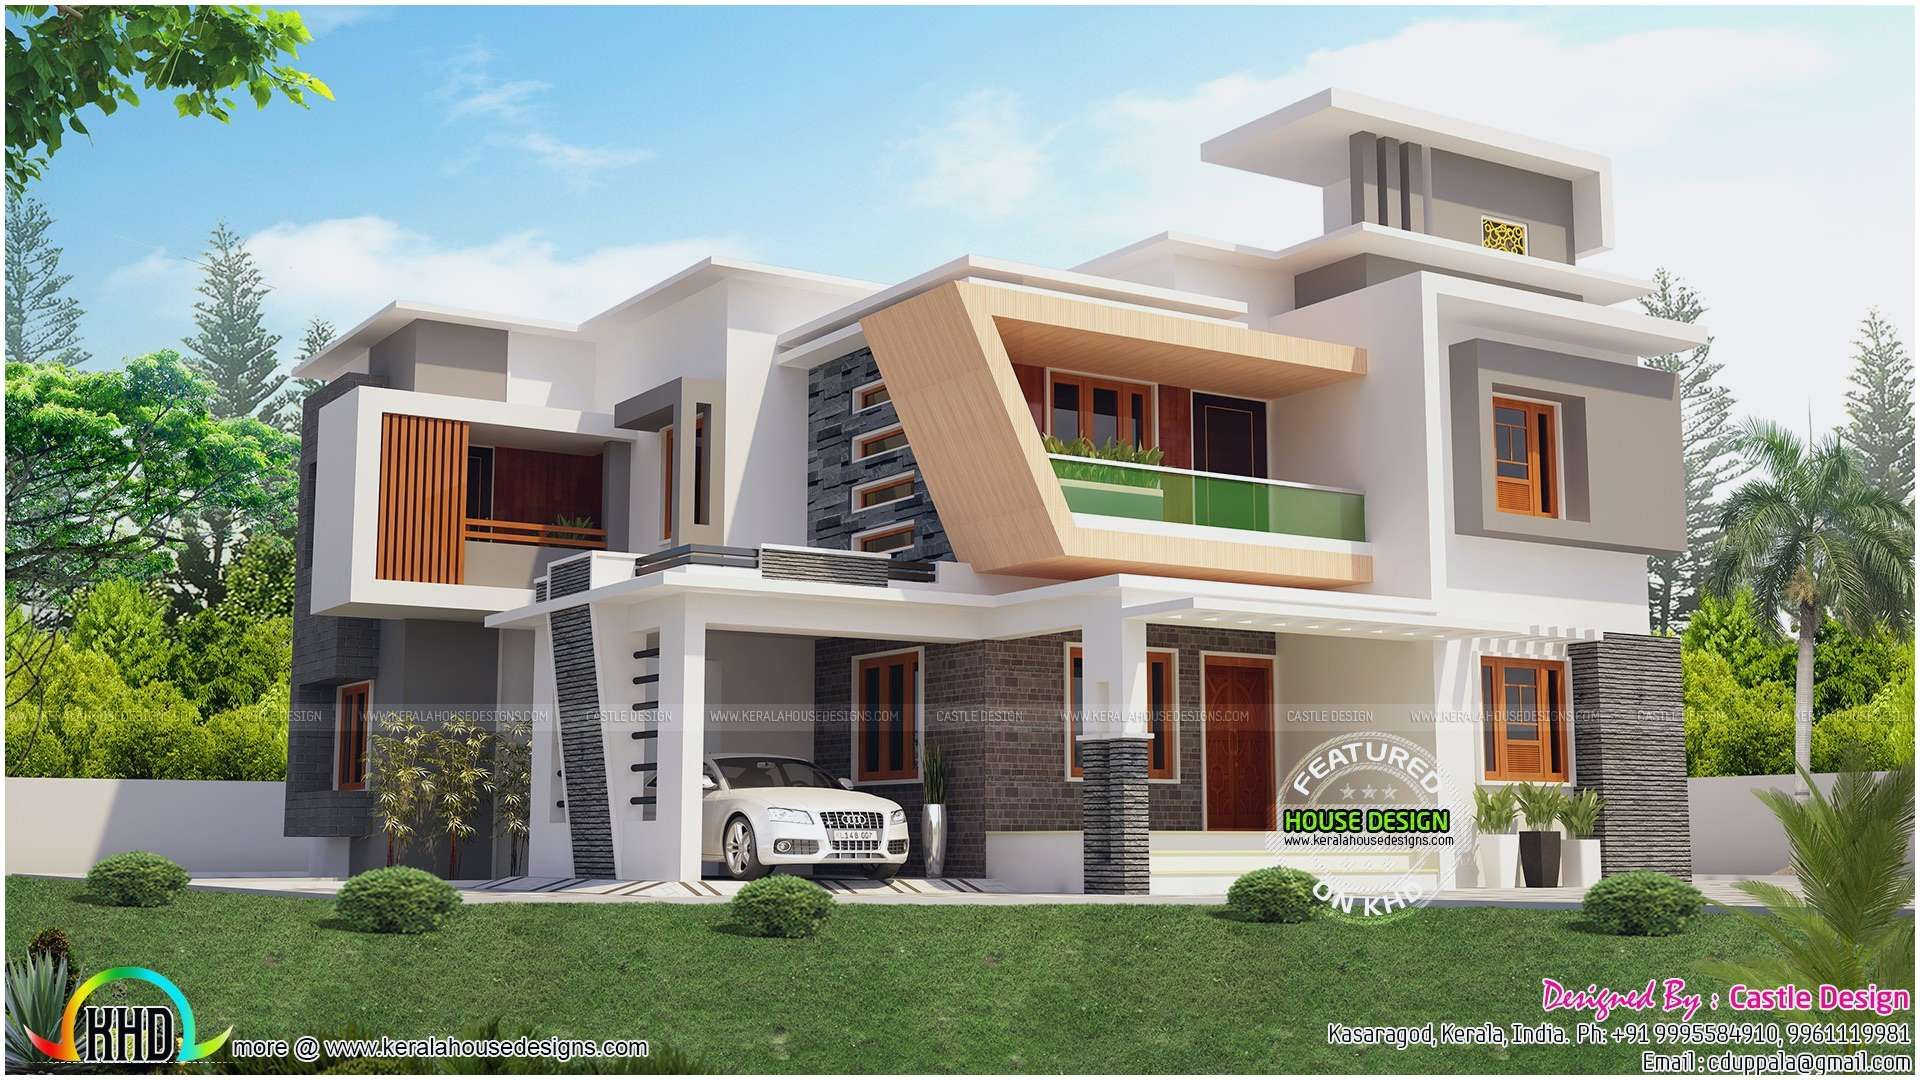 Small House Colors 22 Luxury Exterior Home Design For Small House In India In 2020 Bungalow House Design Craftsman Style House Plans Contemporary House Design